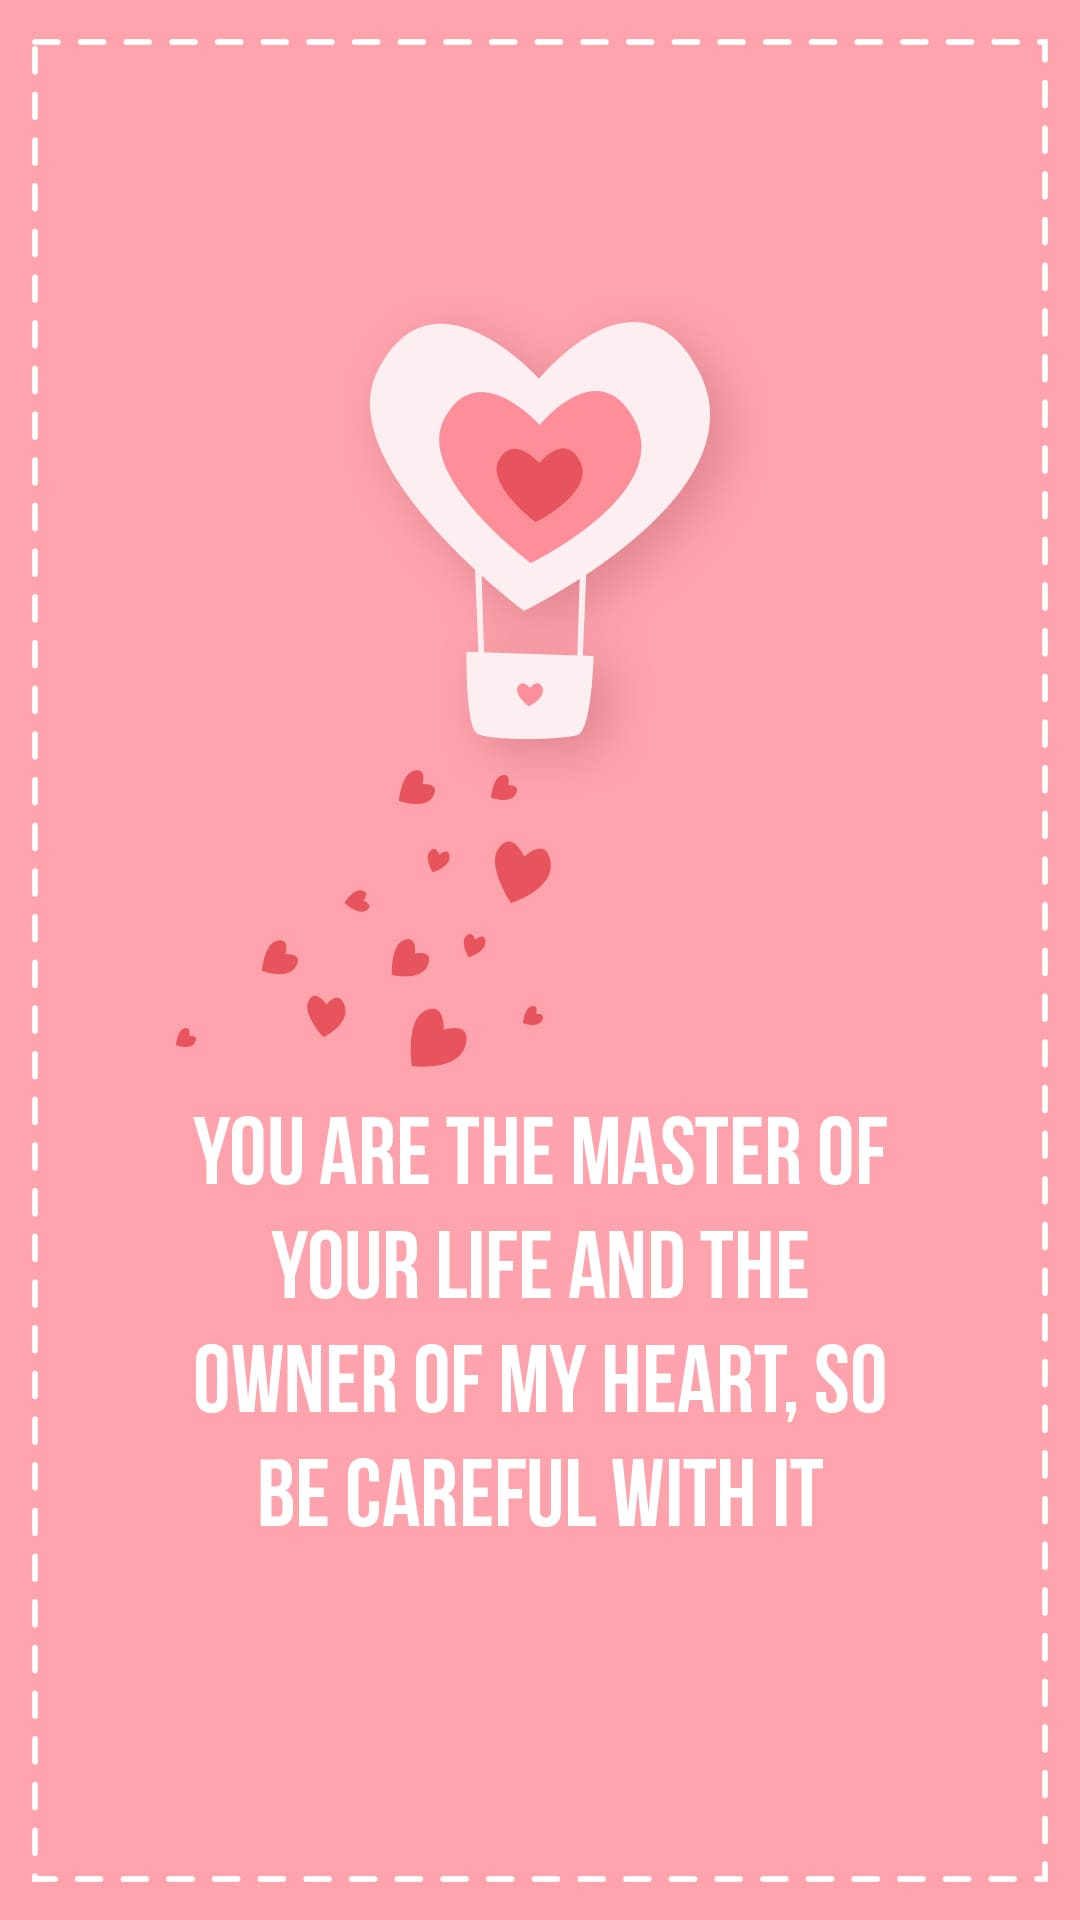 40+ Awesome Valentine's Day Quotes 2021 😍 - valentines day quotes for him 3